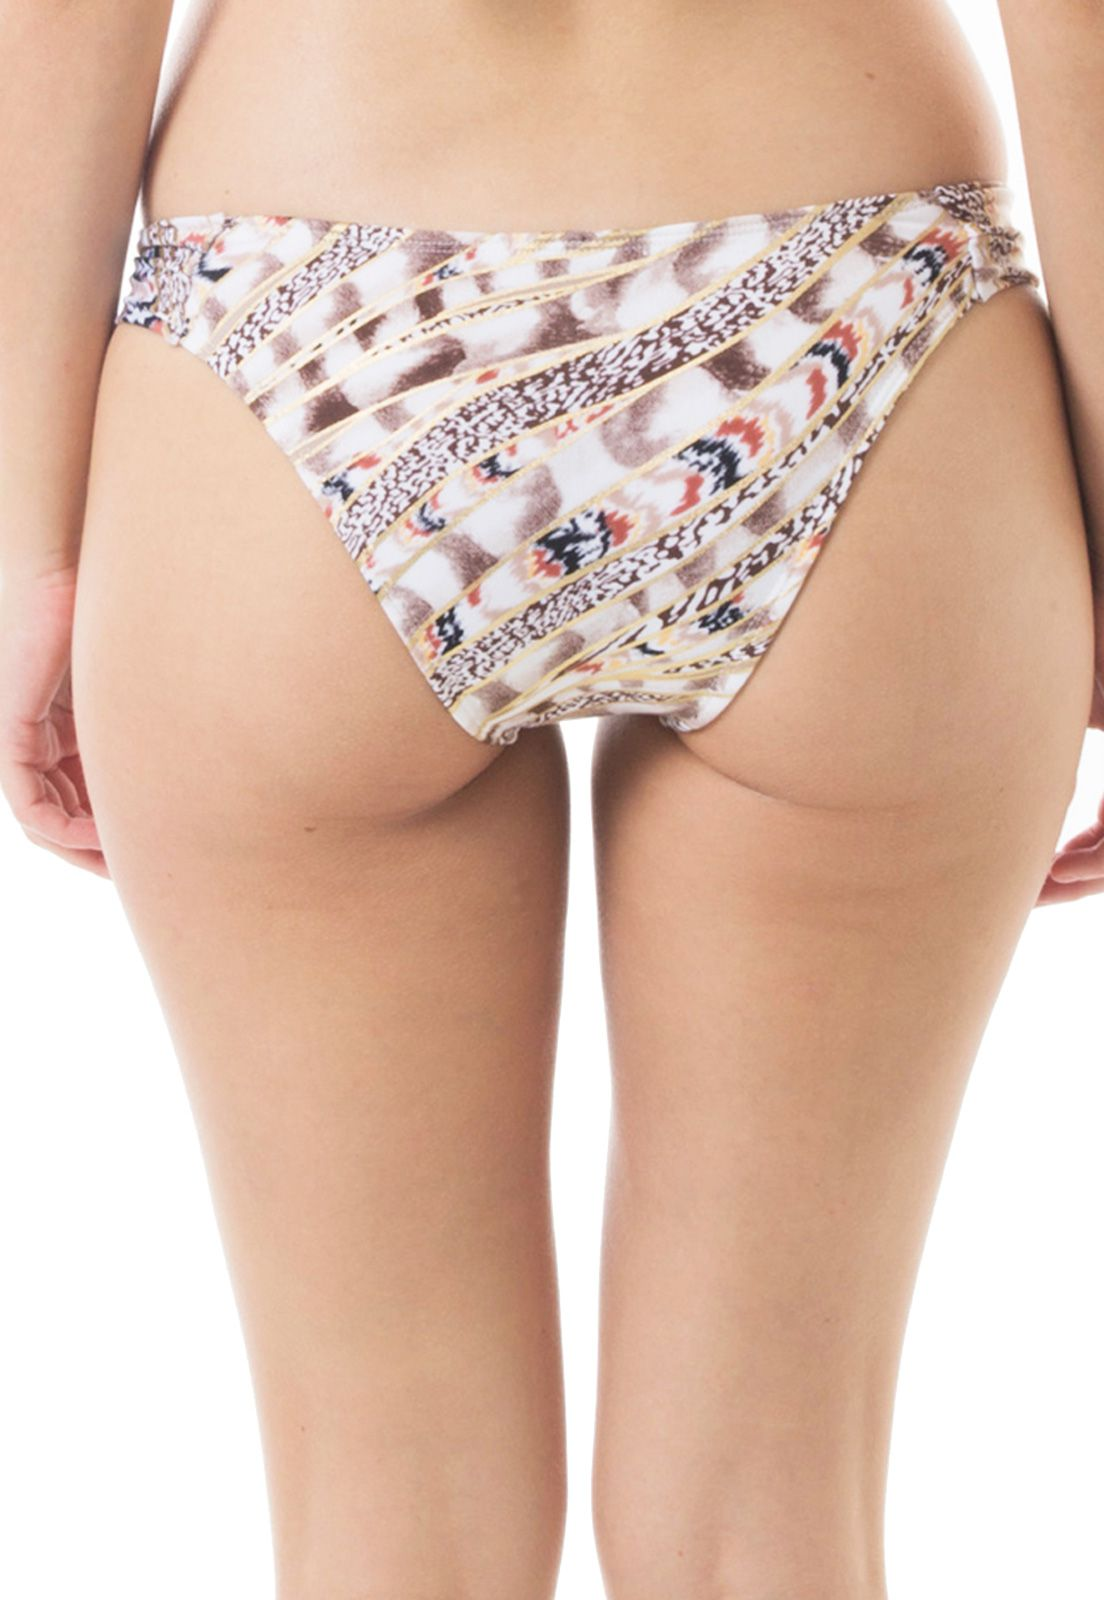 Biquíni Bottom Inteira Larga Flavia Donadio Beachwear Venice-1 Estampada